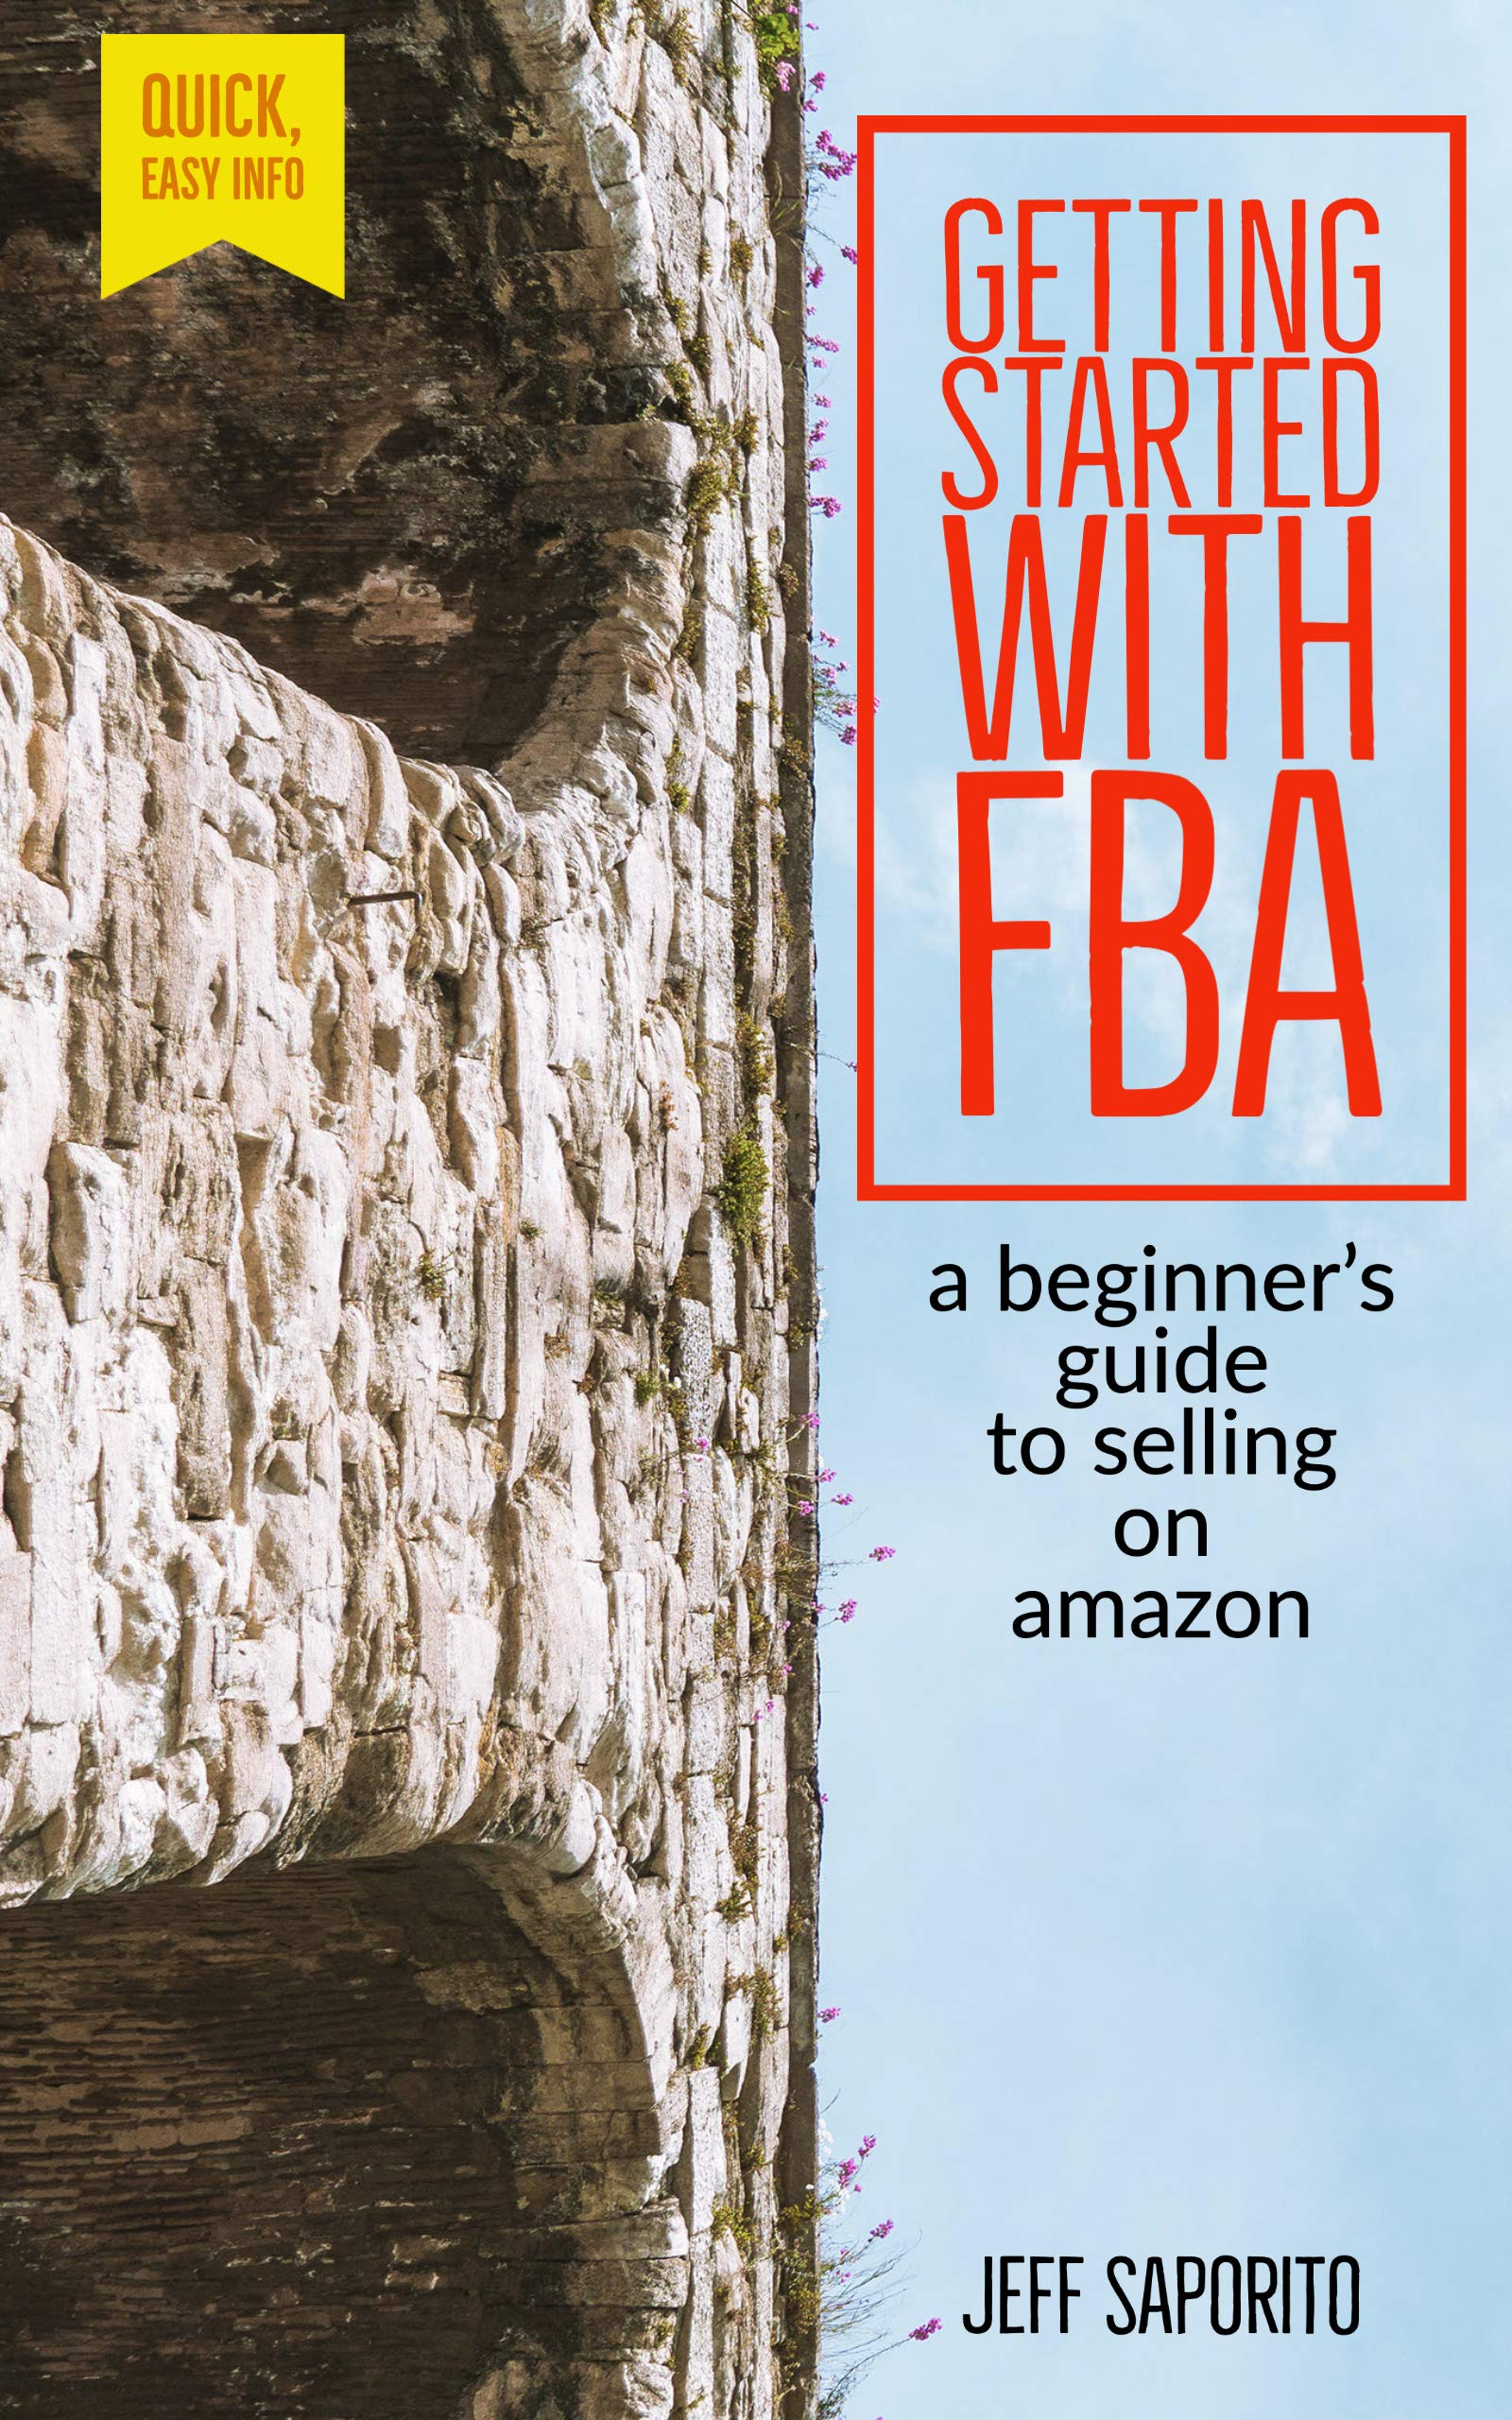 Getting Started with FBA: A Beginner's Guide to Selling on Amazon with FBA